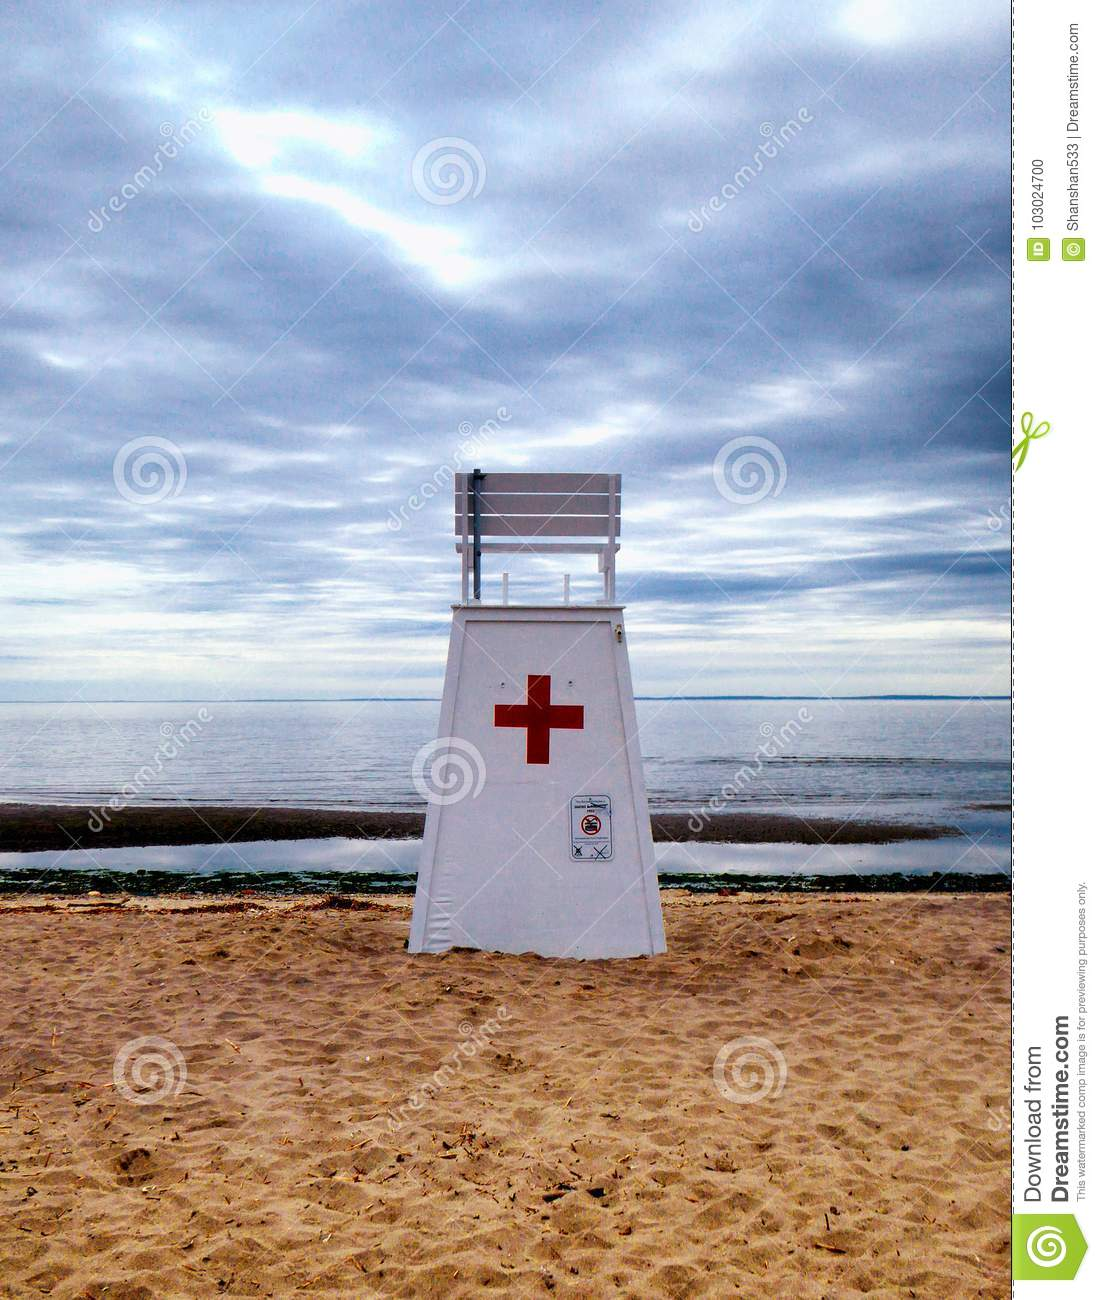 Lifeguard Rescue stand chair at Walnut Beach